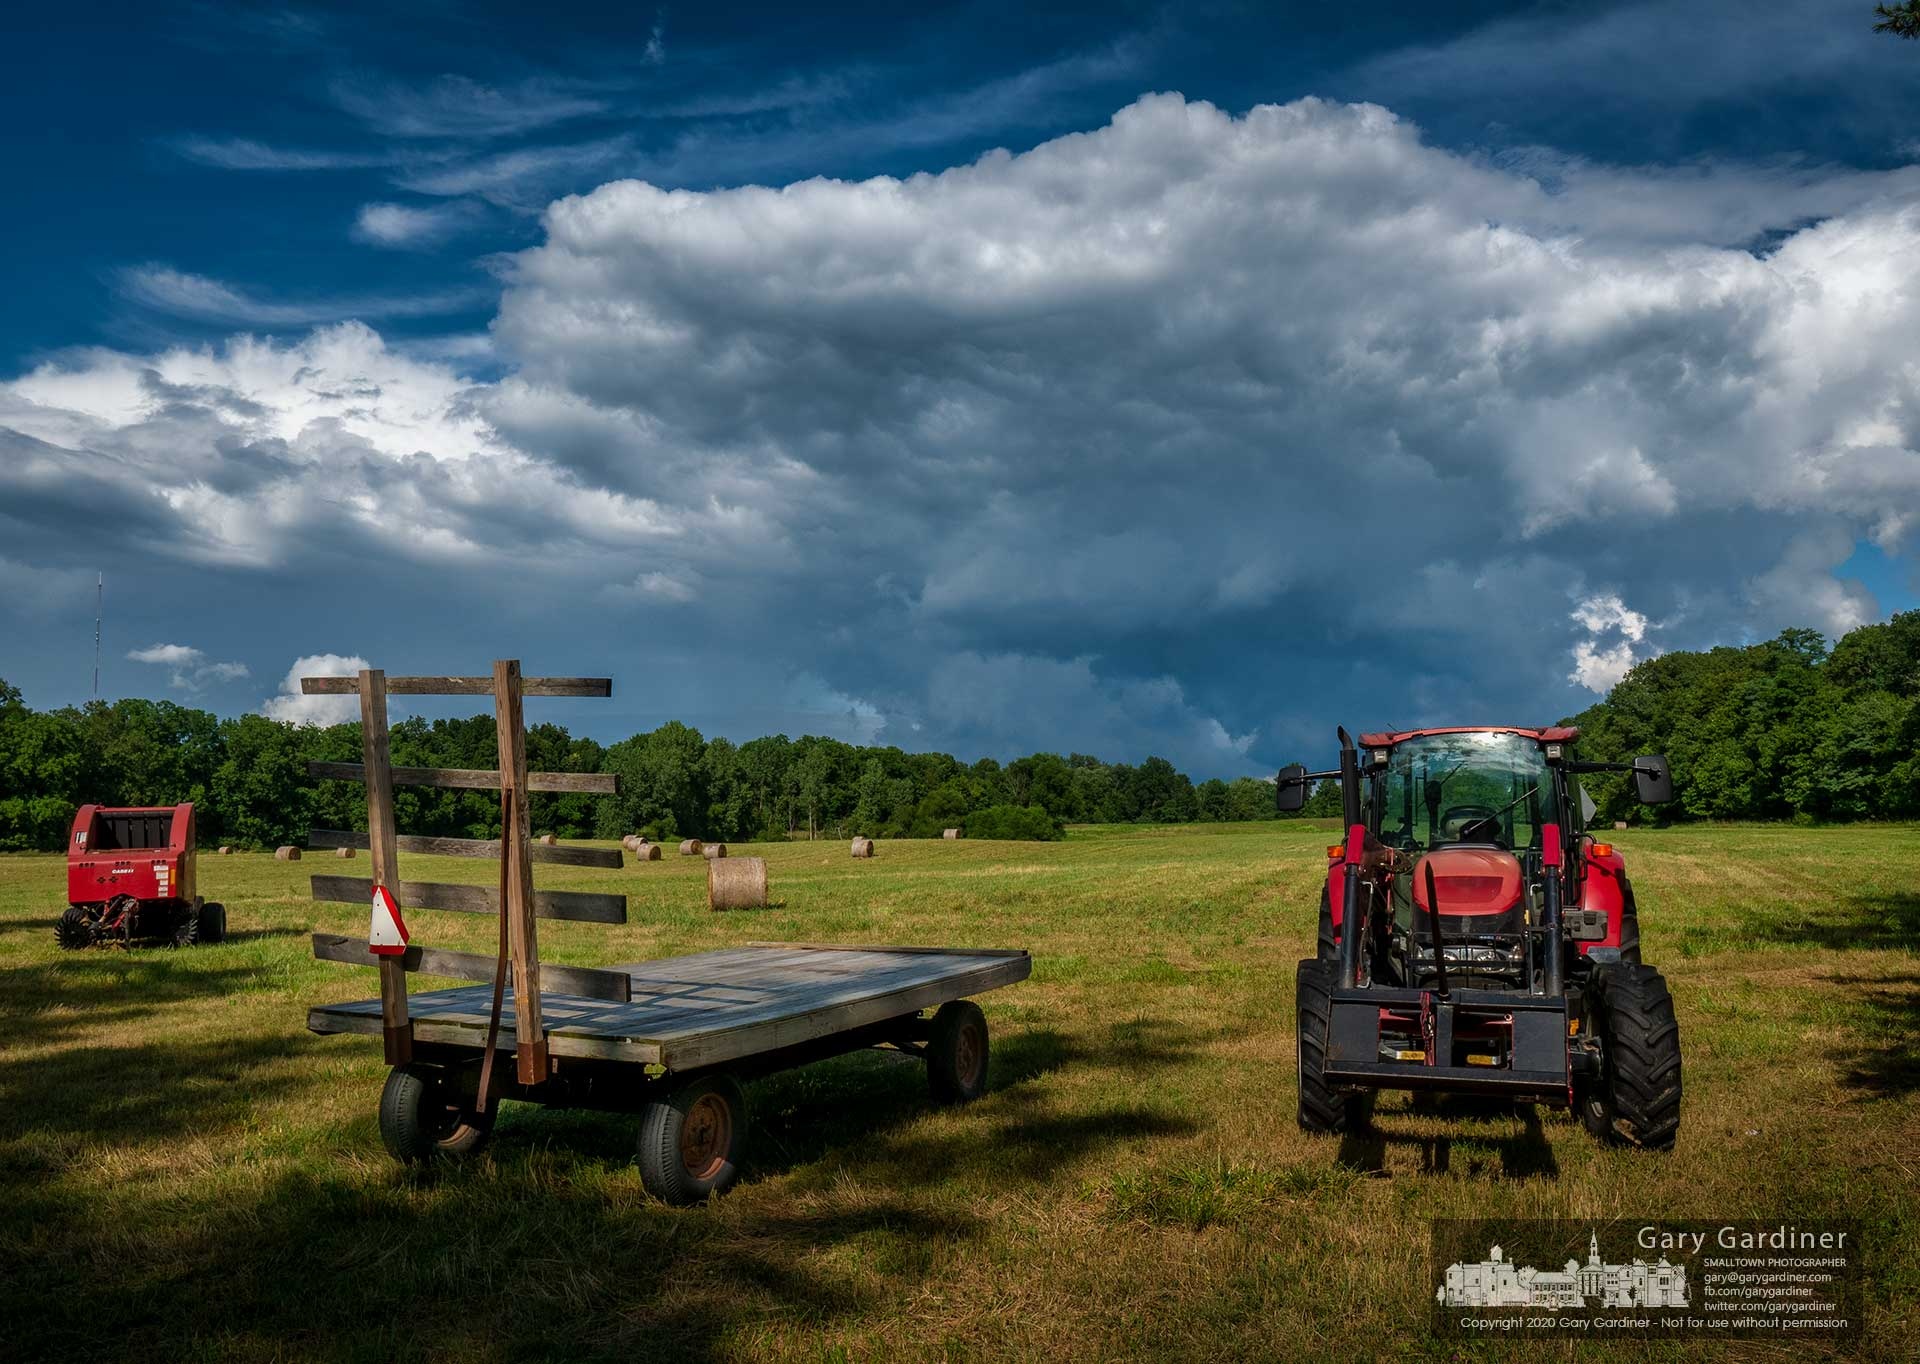 Storm clouds move eastward bypassing the freshly cut and baled hay fields at the Sharp Farm on Africa Road. My Final Photo for Aug. 3, 2020.